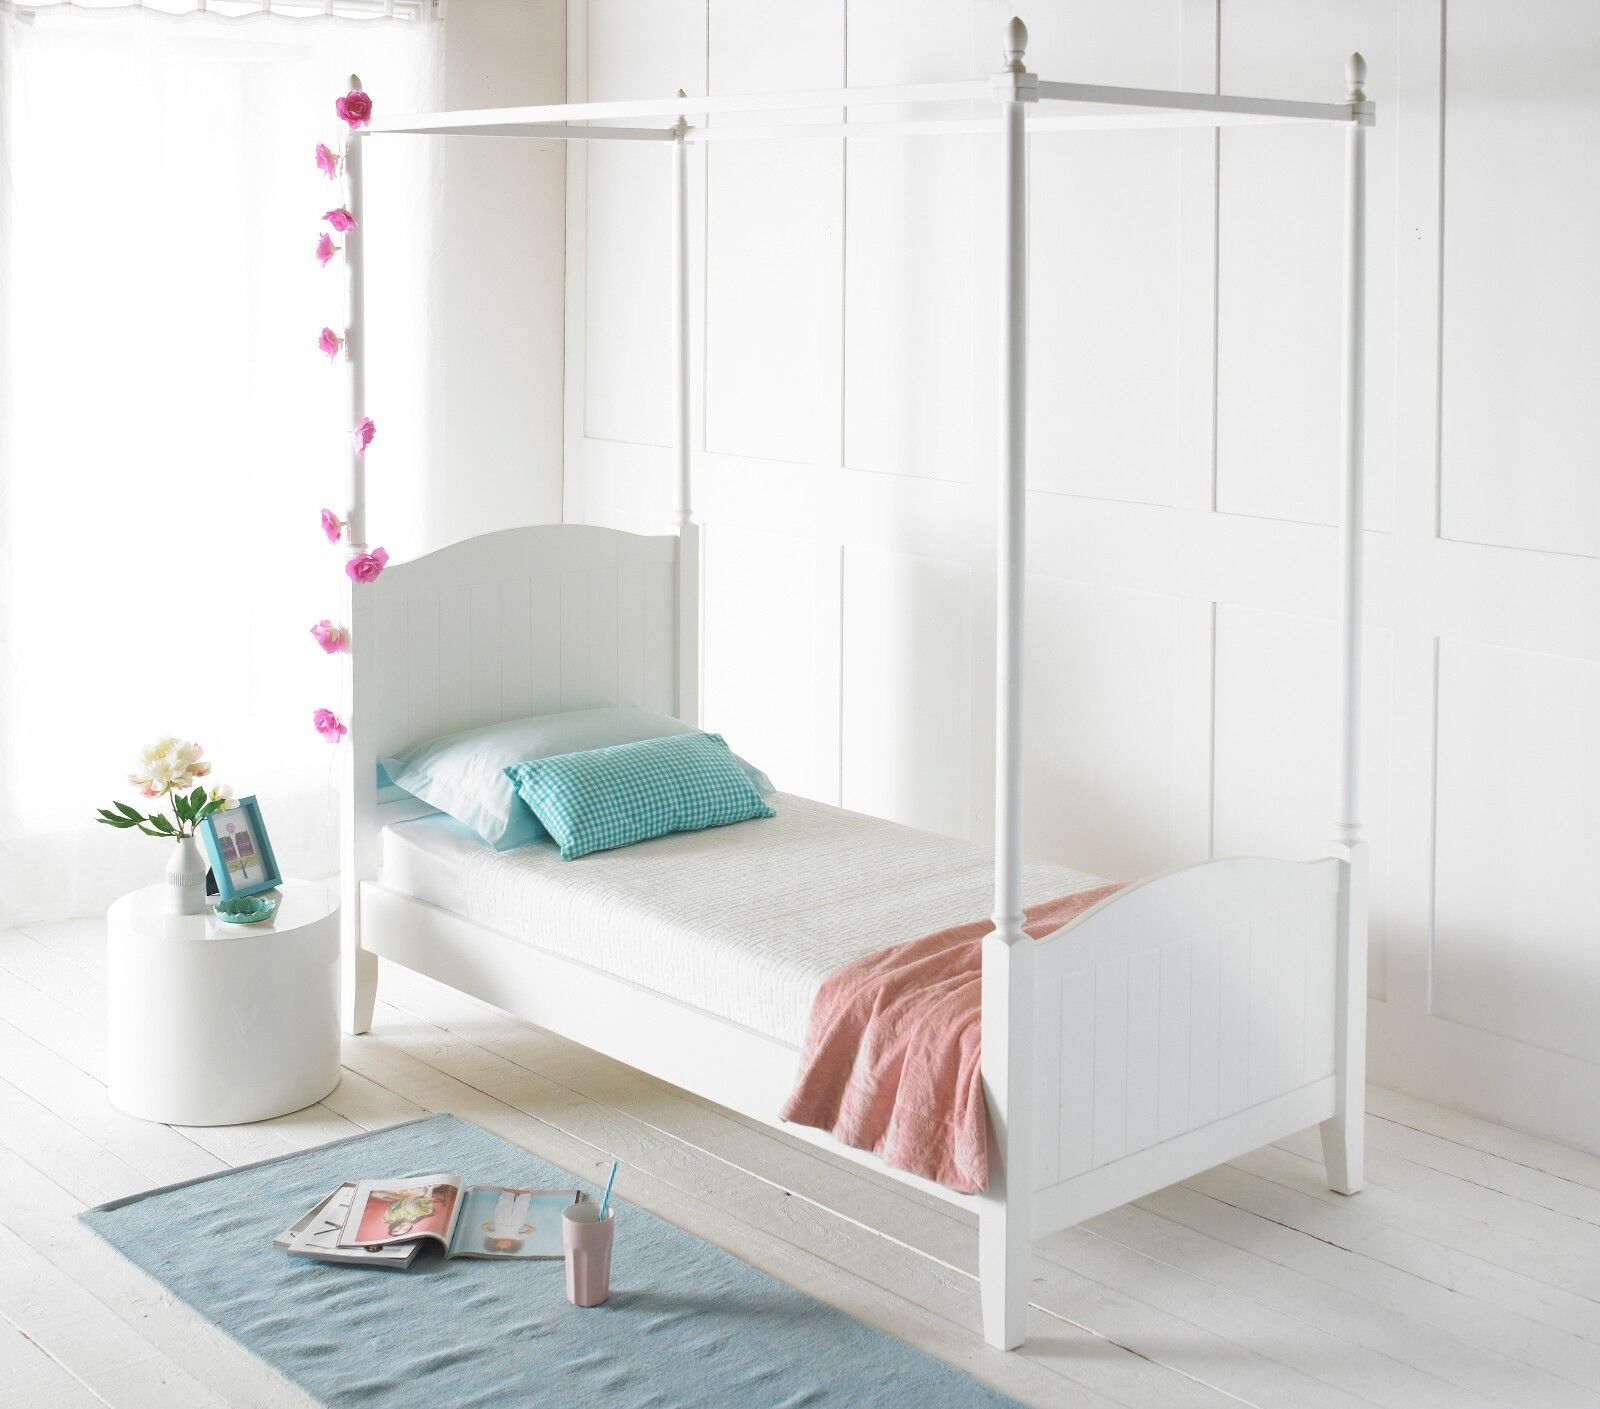 Beau 4 Four Poster Solid Wood Bed Frame Childrens Single Painted White Bed Only Ebay